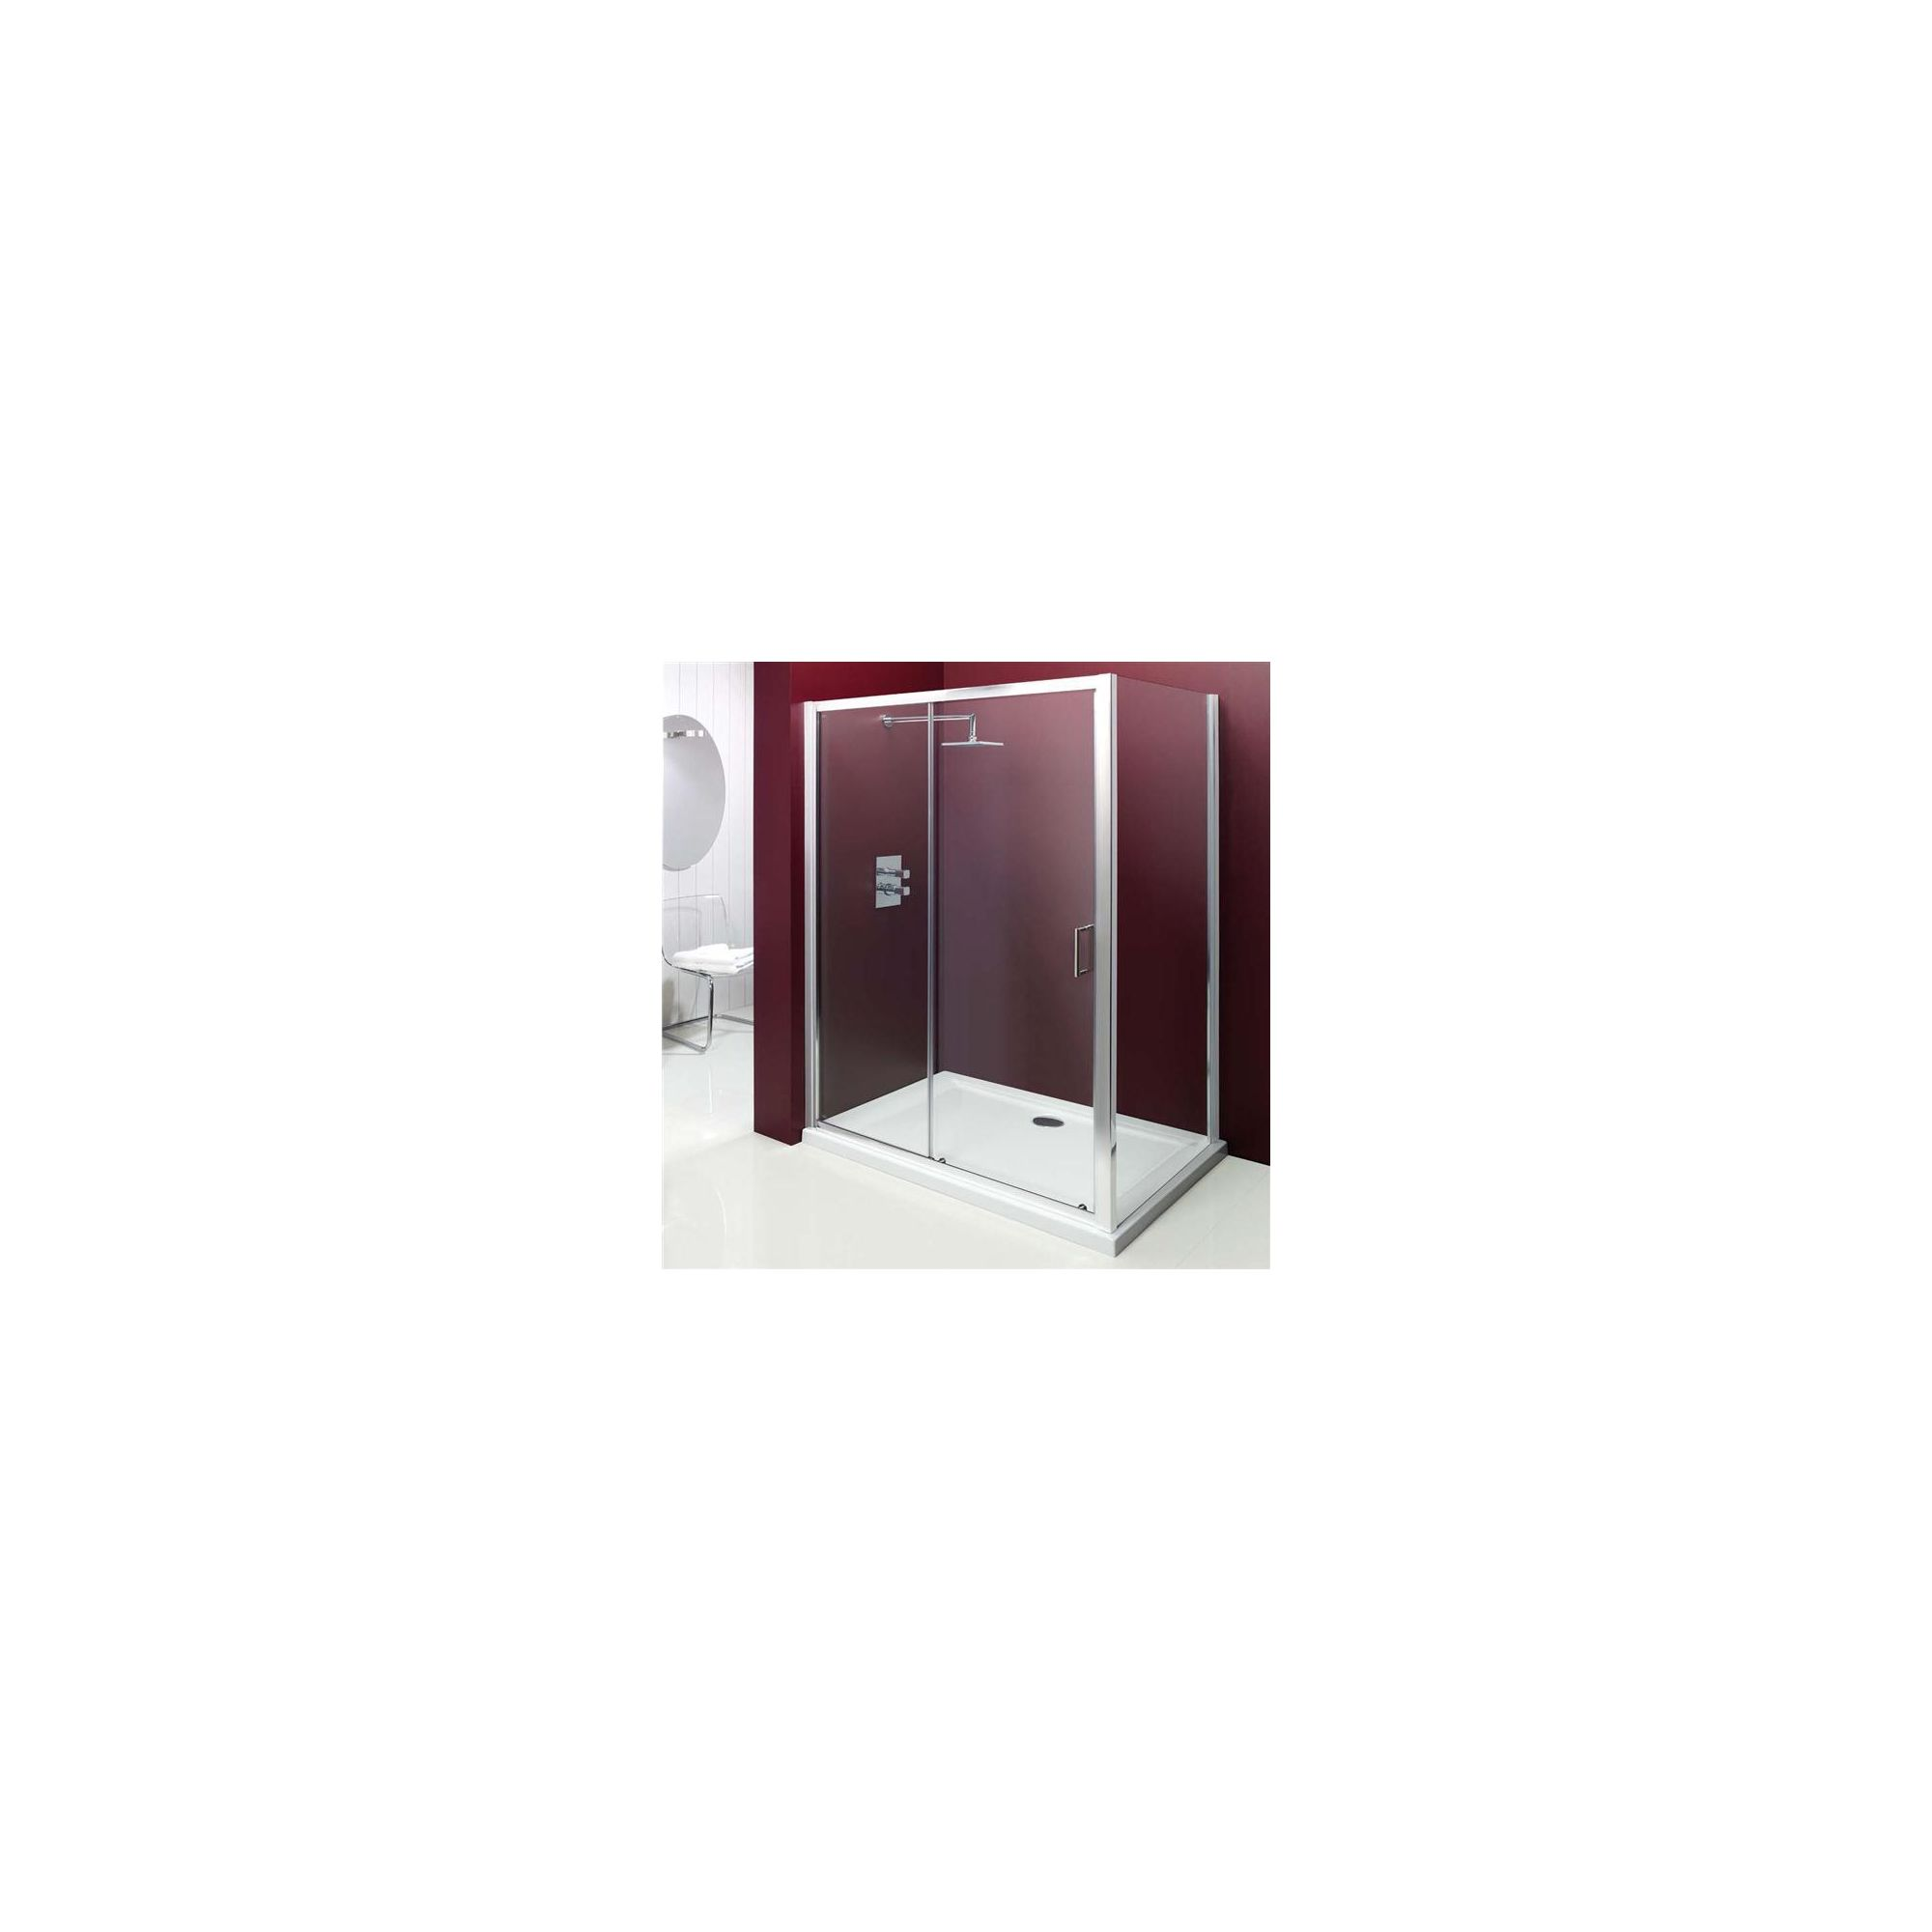 Merlyn Vivid Entree Sliding Door Shower Enclosure, 1100mm x 800mm, Low Profile Tray, 6mm Glass at Tesco Direct